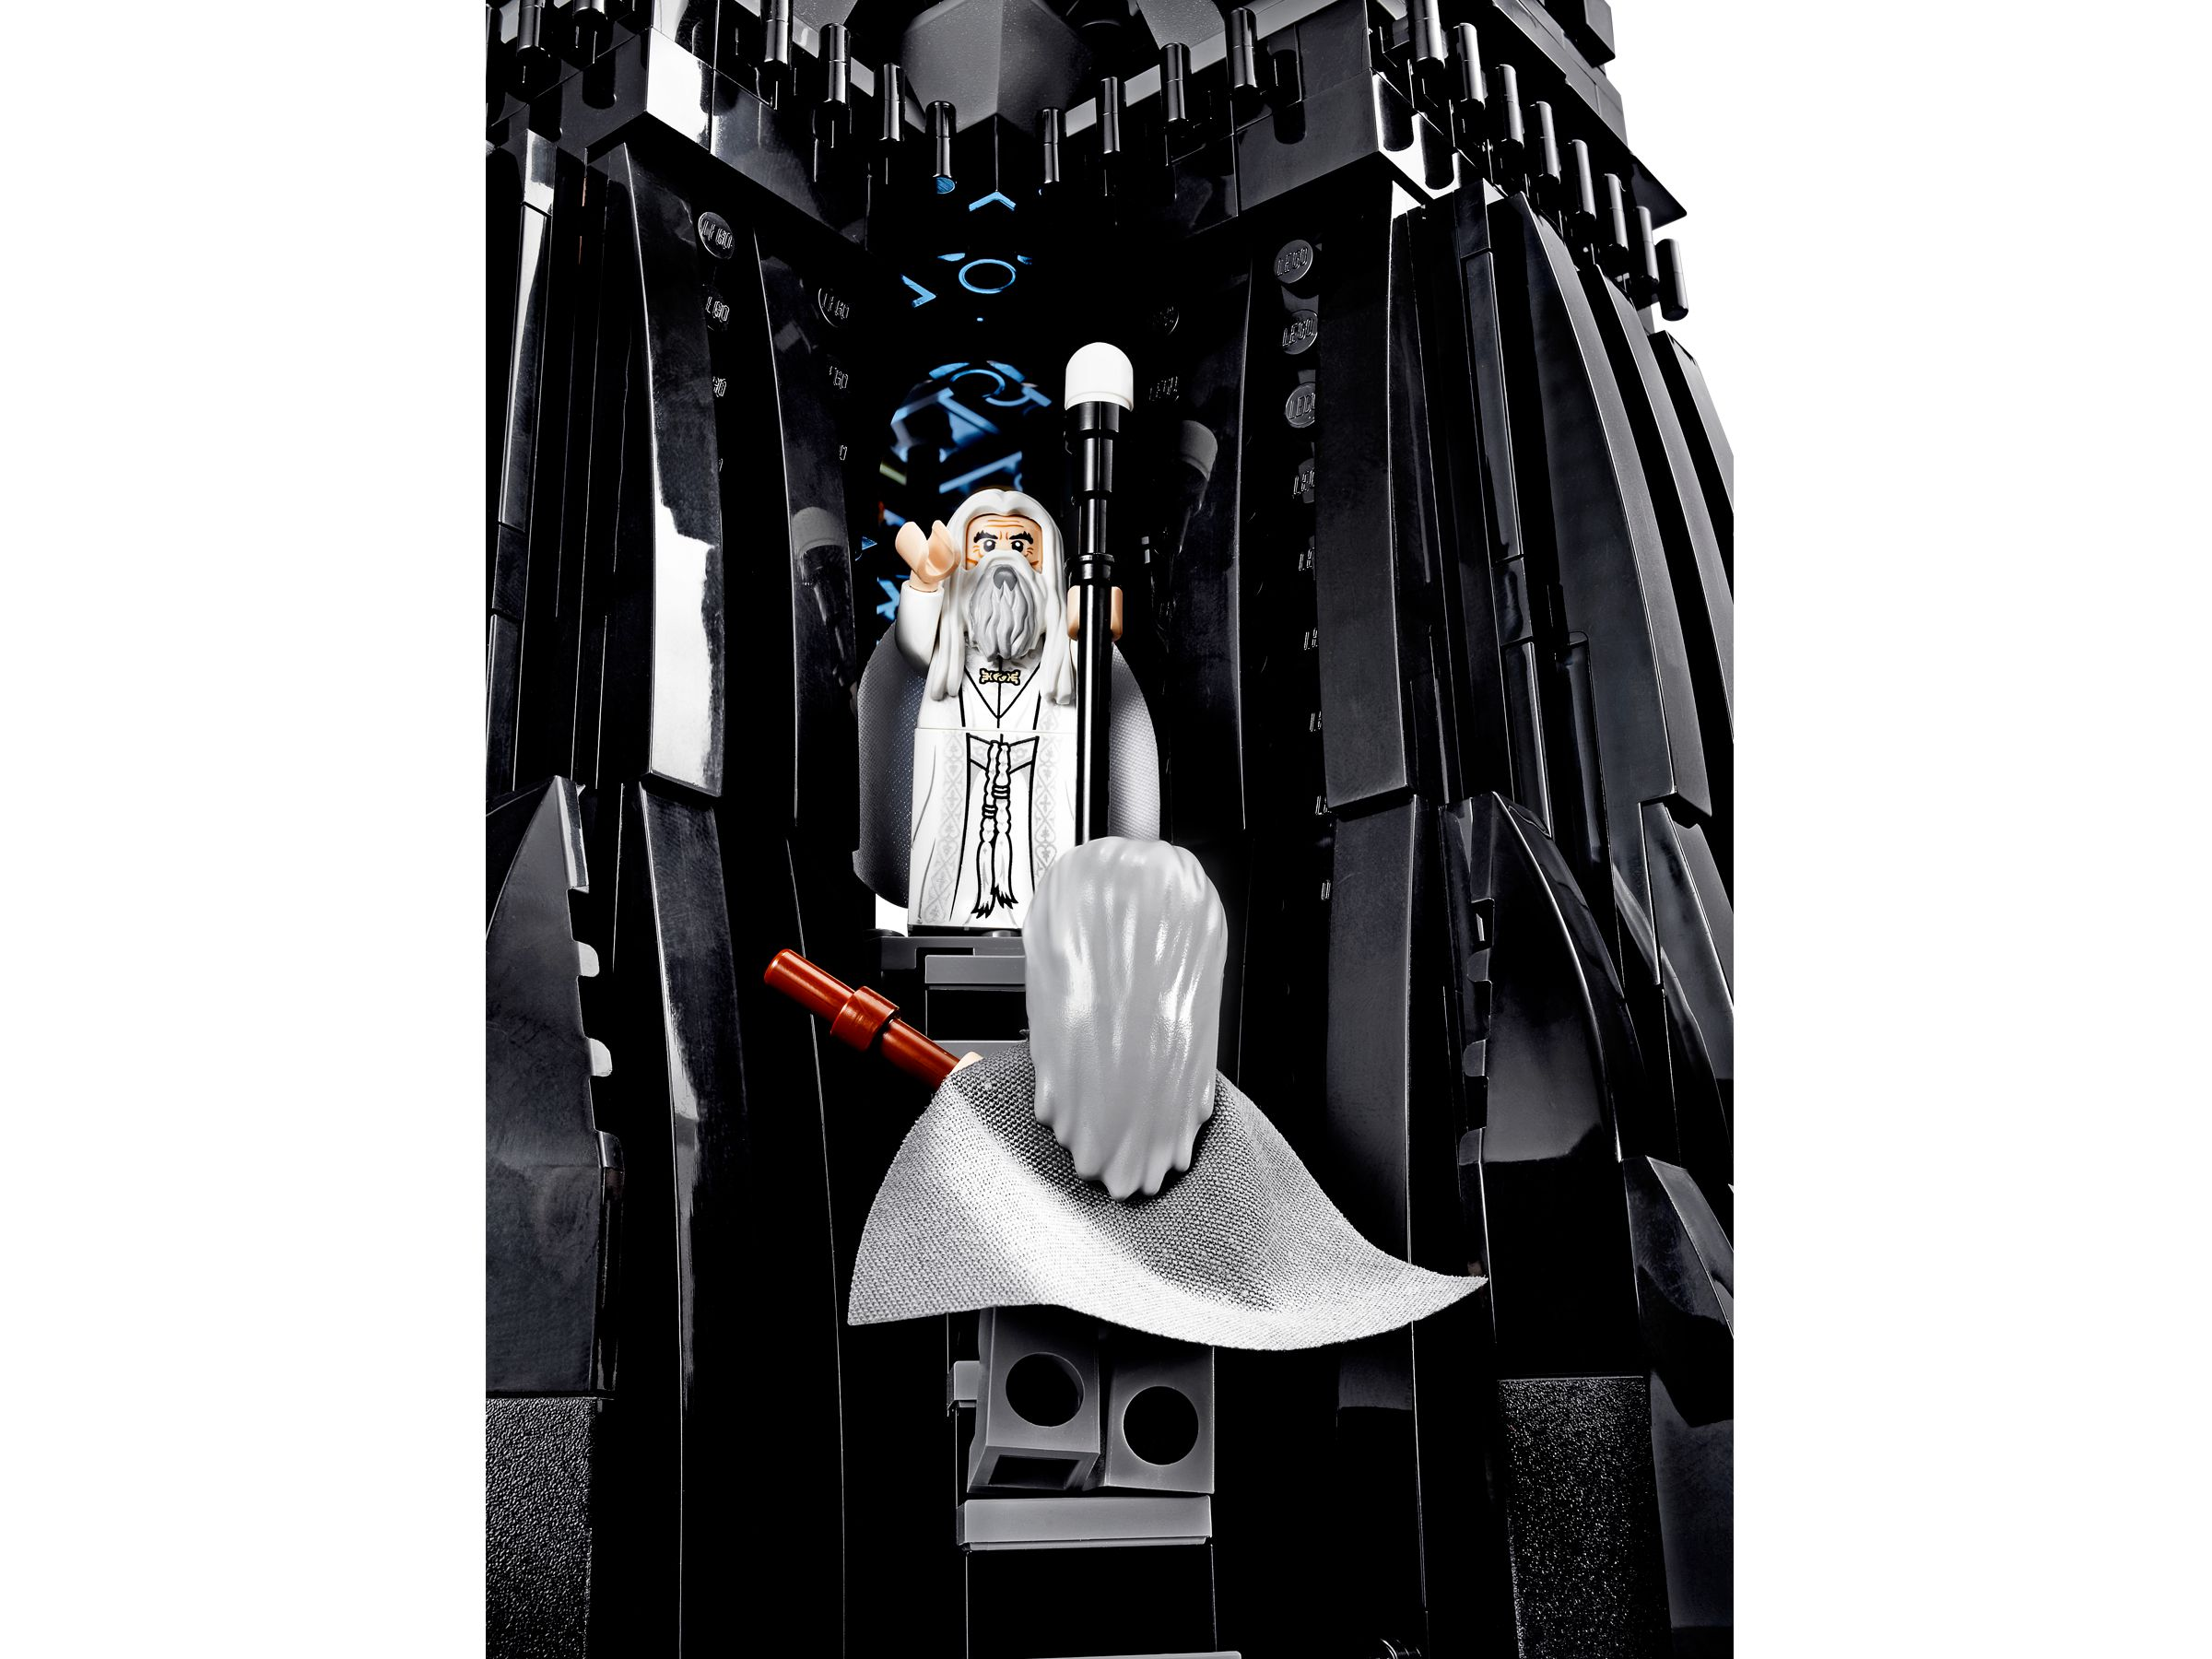 LEGO Lord of the Rings 10237 Der Turm von Orthanc™ LEGO_10237_alt4.jpg